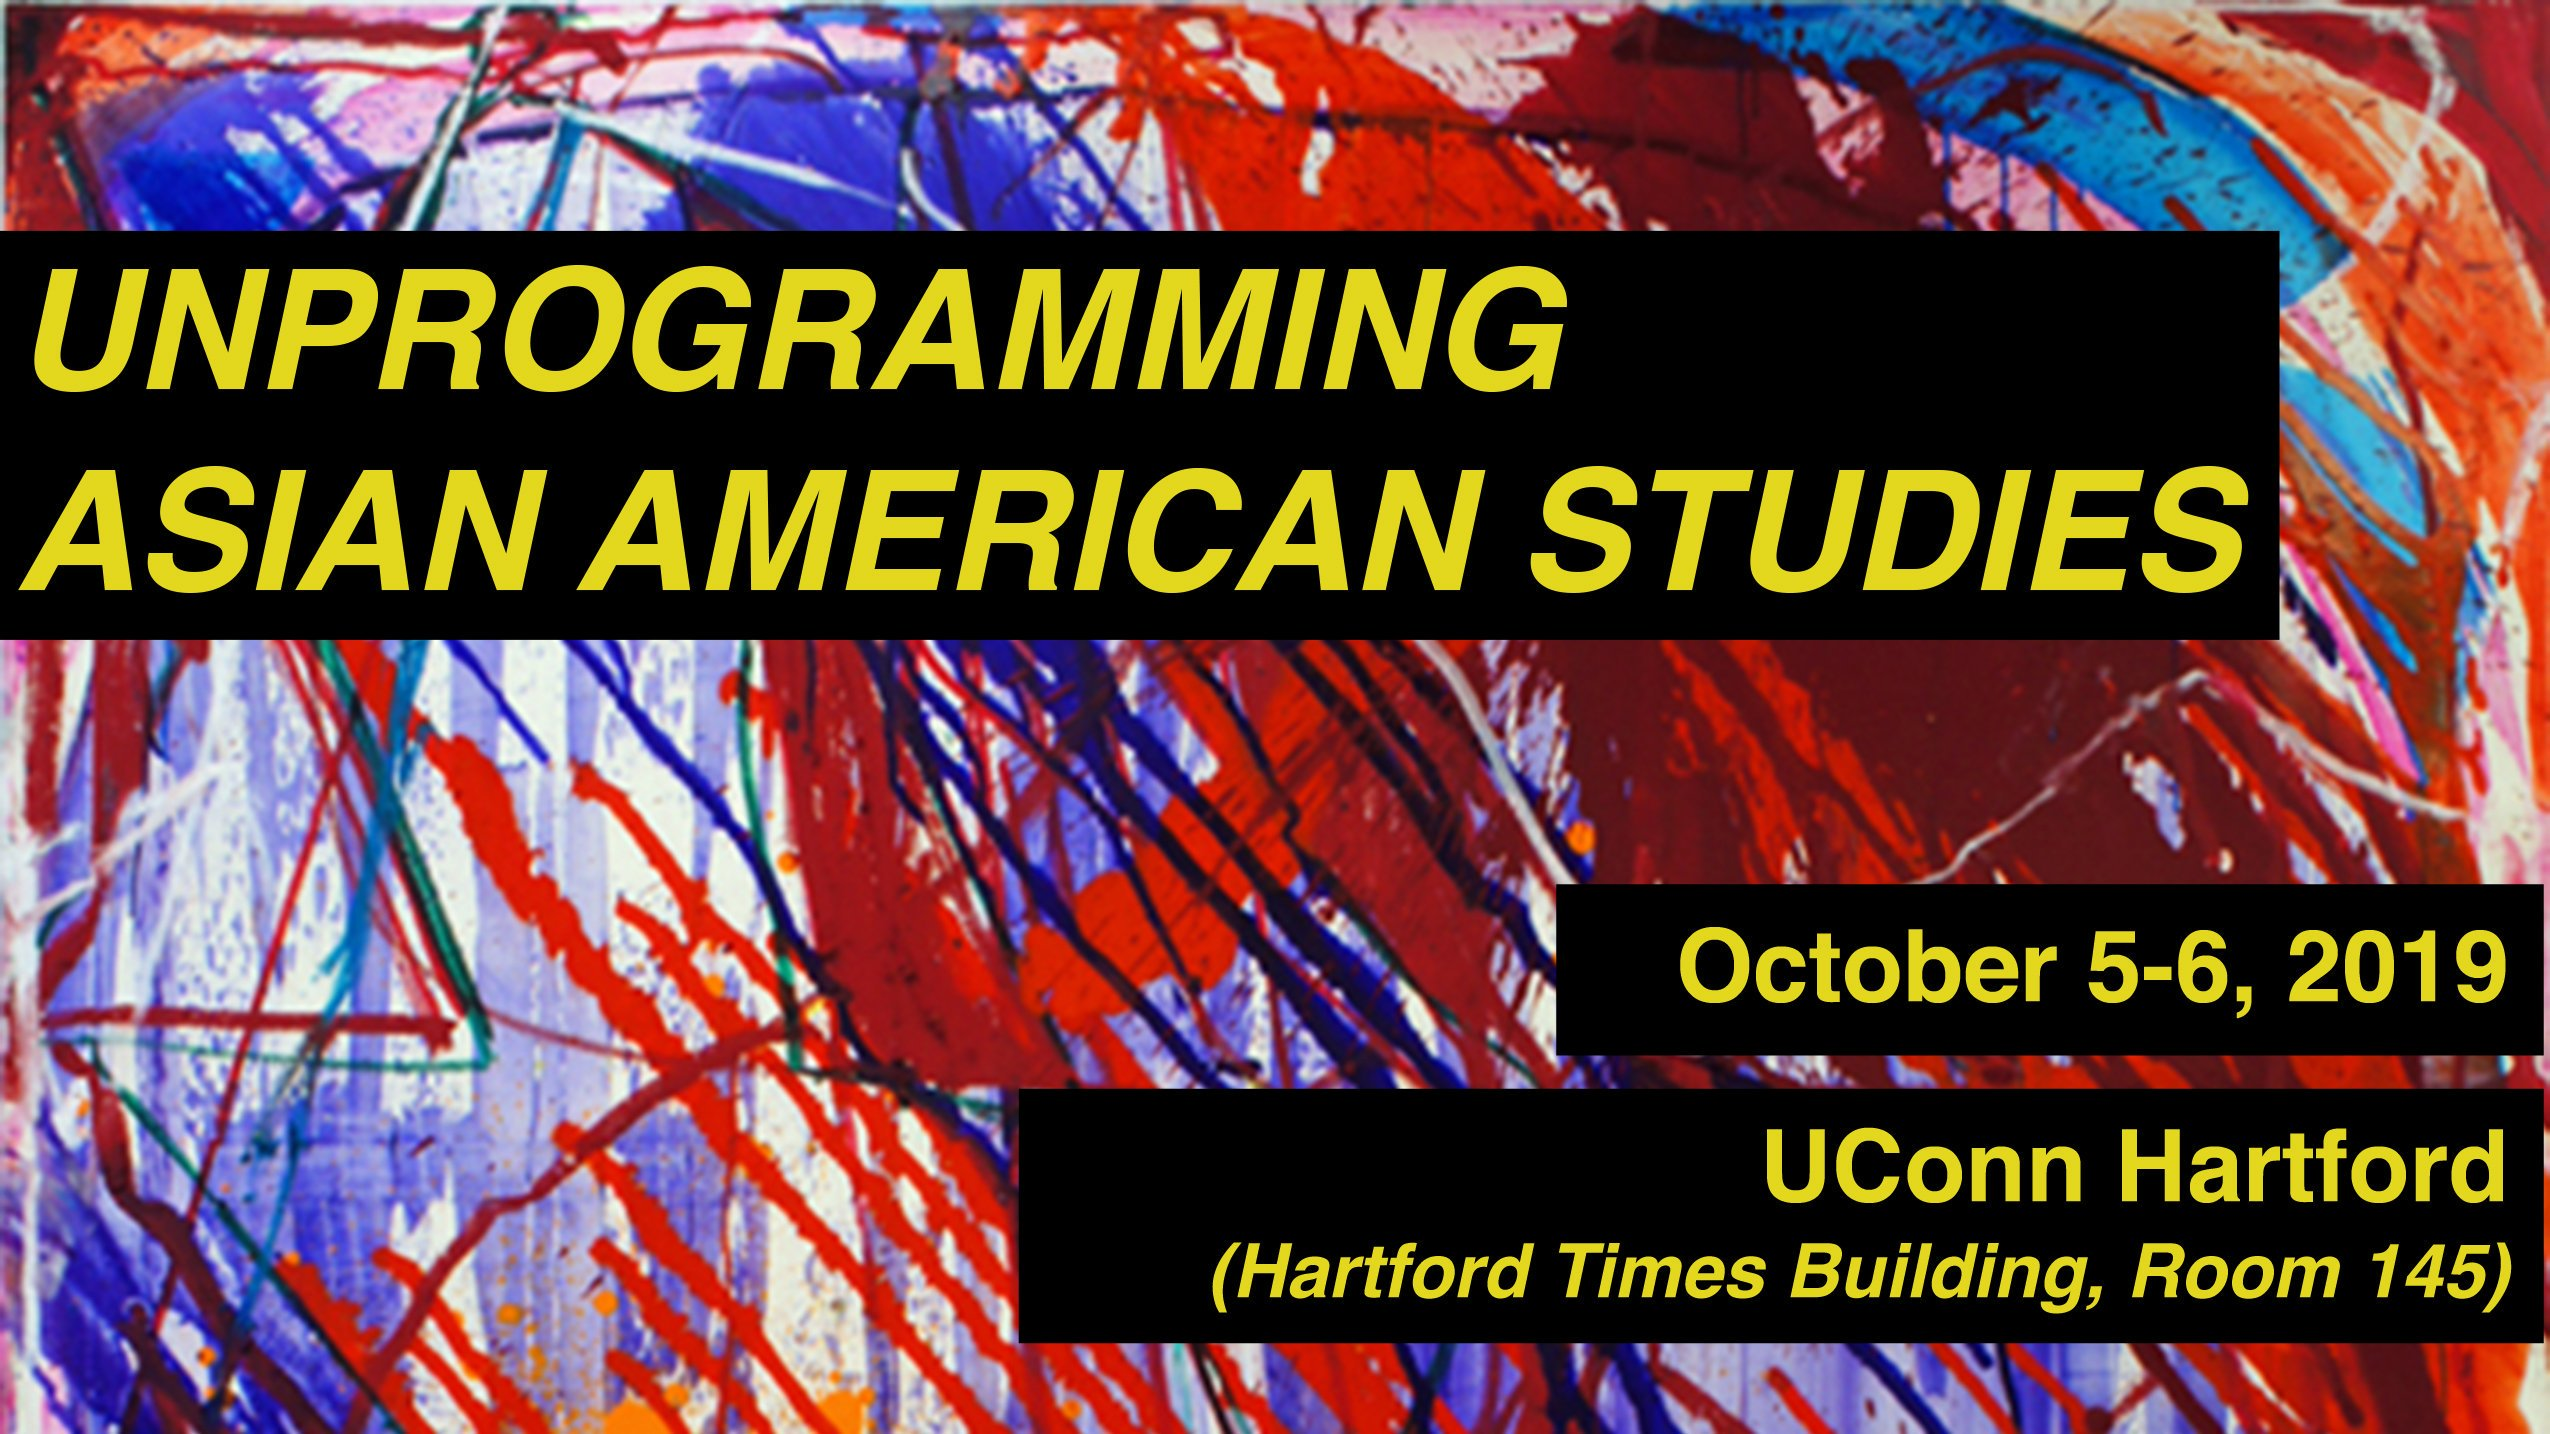 Unprogramming Asian American Studies Conference